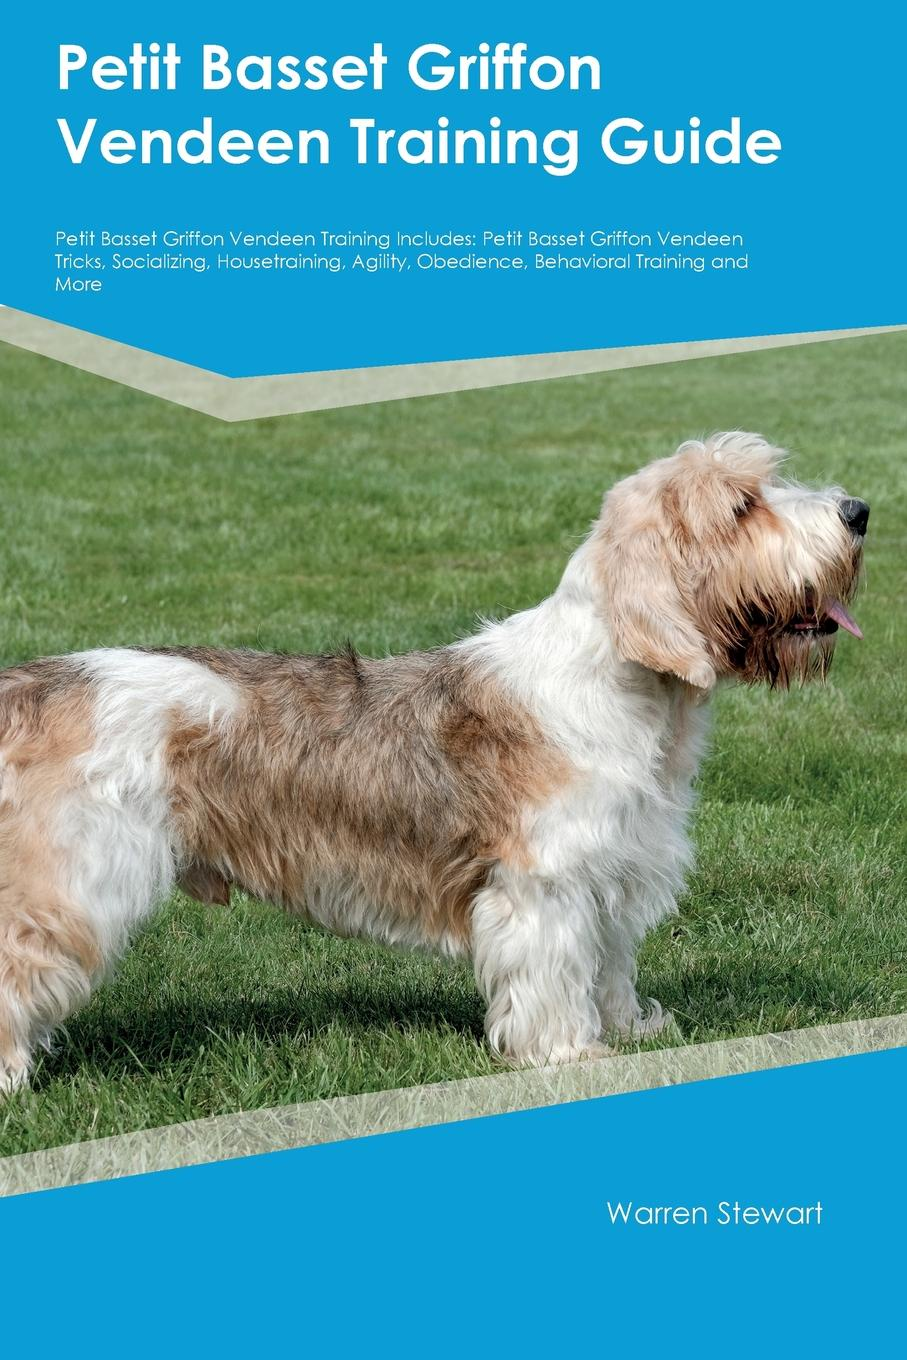 Petit Basset Griffon Vendeen Training Guide Petit Basset Griffon Vendeen Training Includes. Petit Basset Griffon Vendeen Tricks, Socializing, Housetraining, Agility, Obedience, Behavioral Training and More